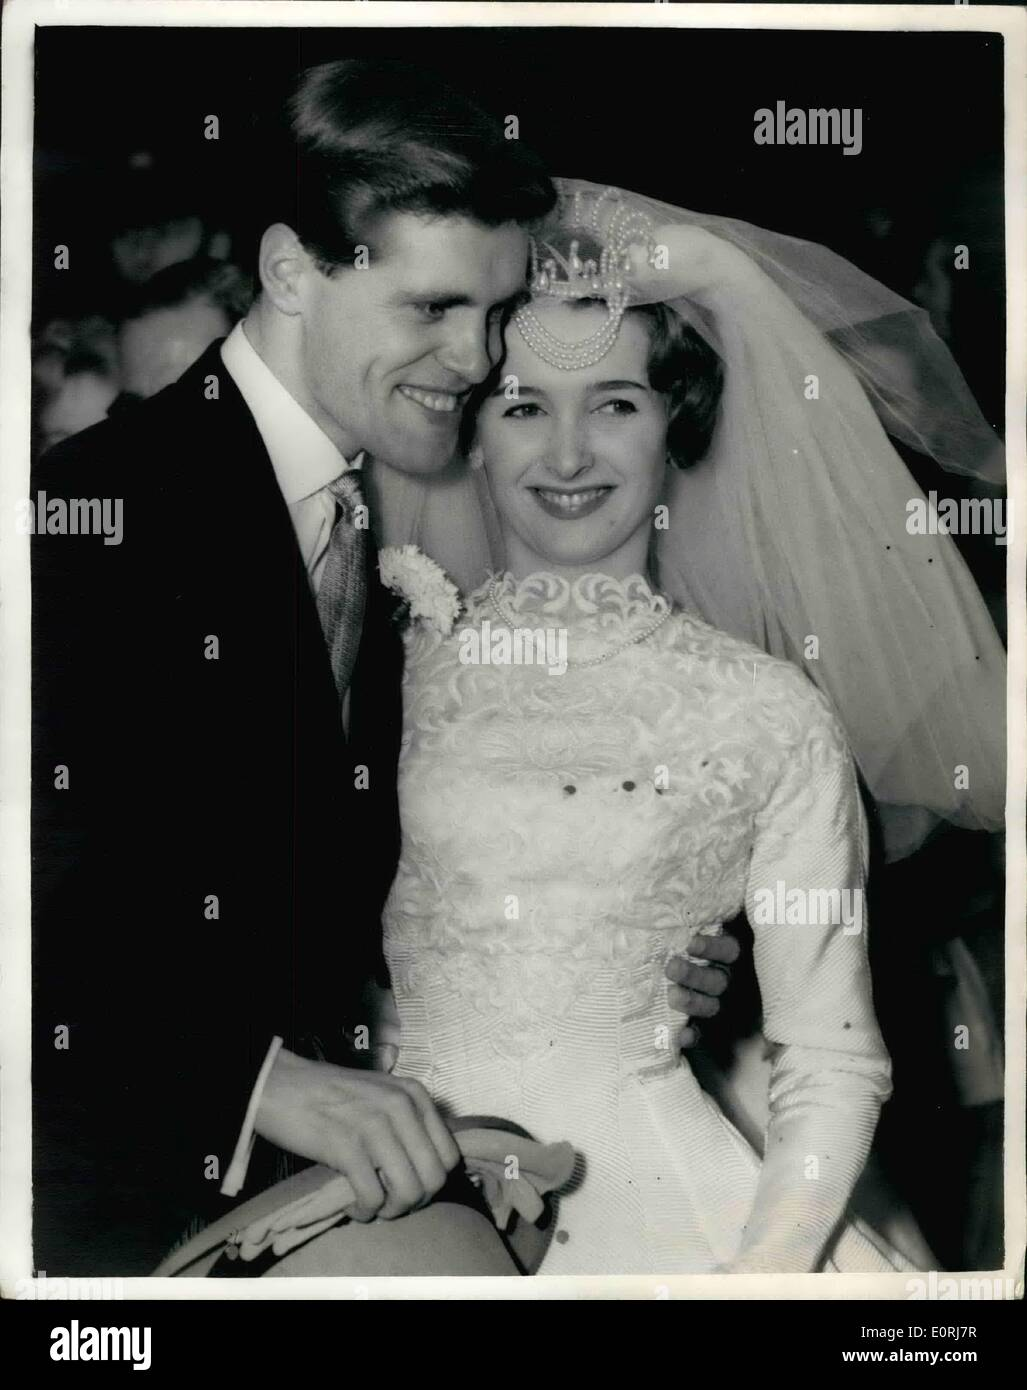 Oct. 10, 1959 - Ronnia Carroll weds musical comedy star: The wedding took place today at Holy Trinity Paddington of actress Musical Comedy star Millicent Martin of ''The Crocked Mile'' at the Cambridge Theatre to singer Ronnie Carroll. The bride was given away by her agent John Penrose and her bridesmaid was her ten year old sister Christine. Photo shows the Bridge and Bridegroom after the wedding this afternoon. - Stock Image